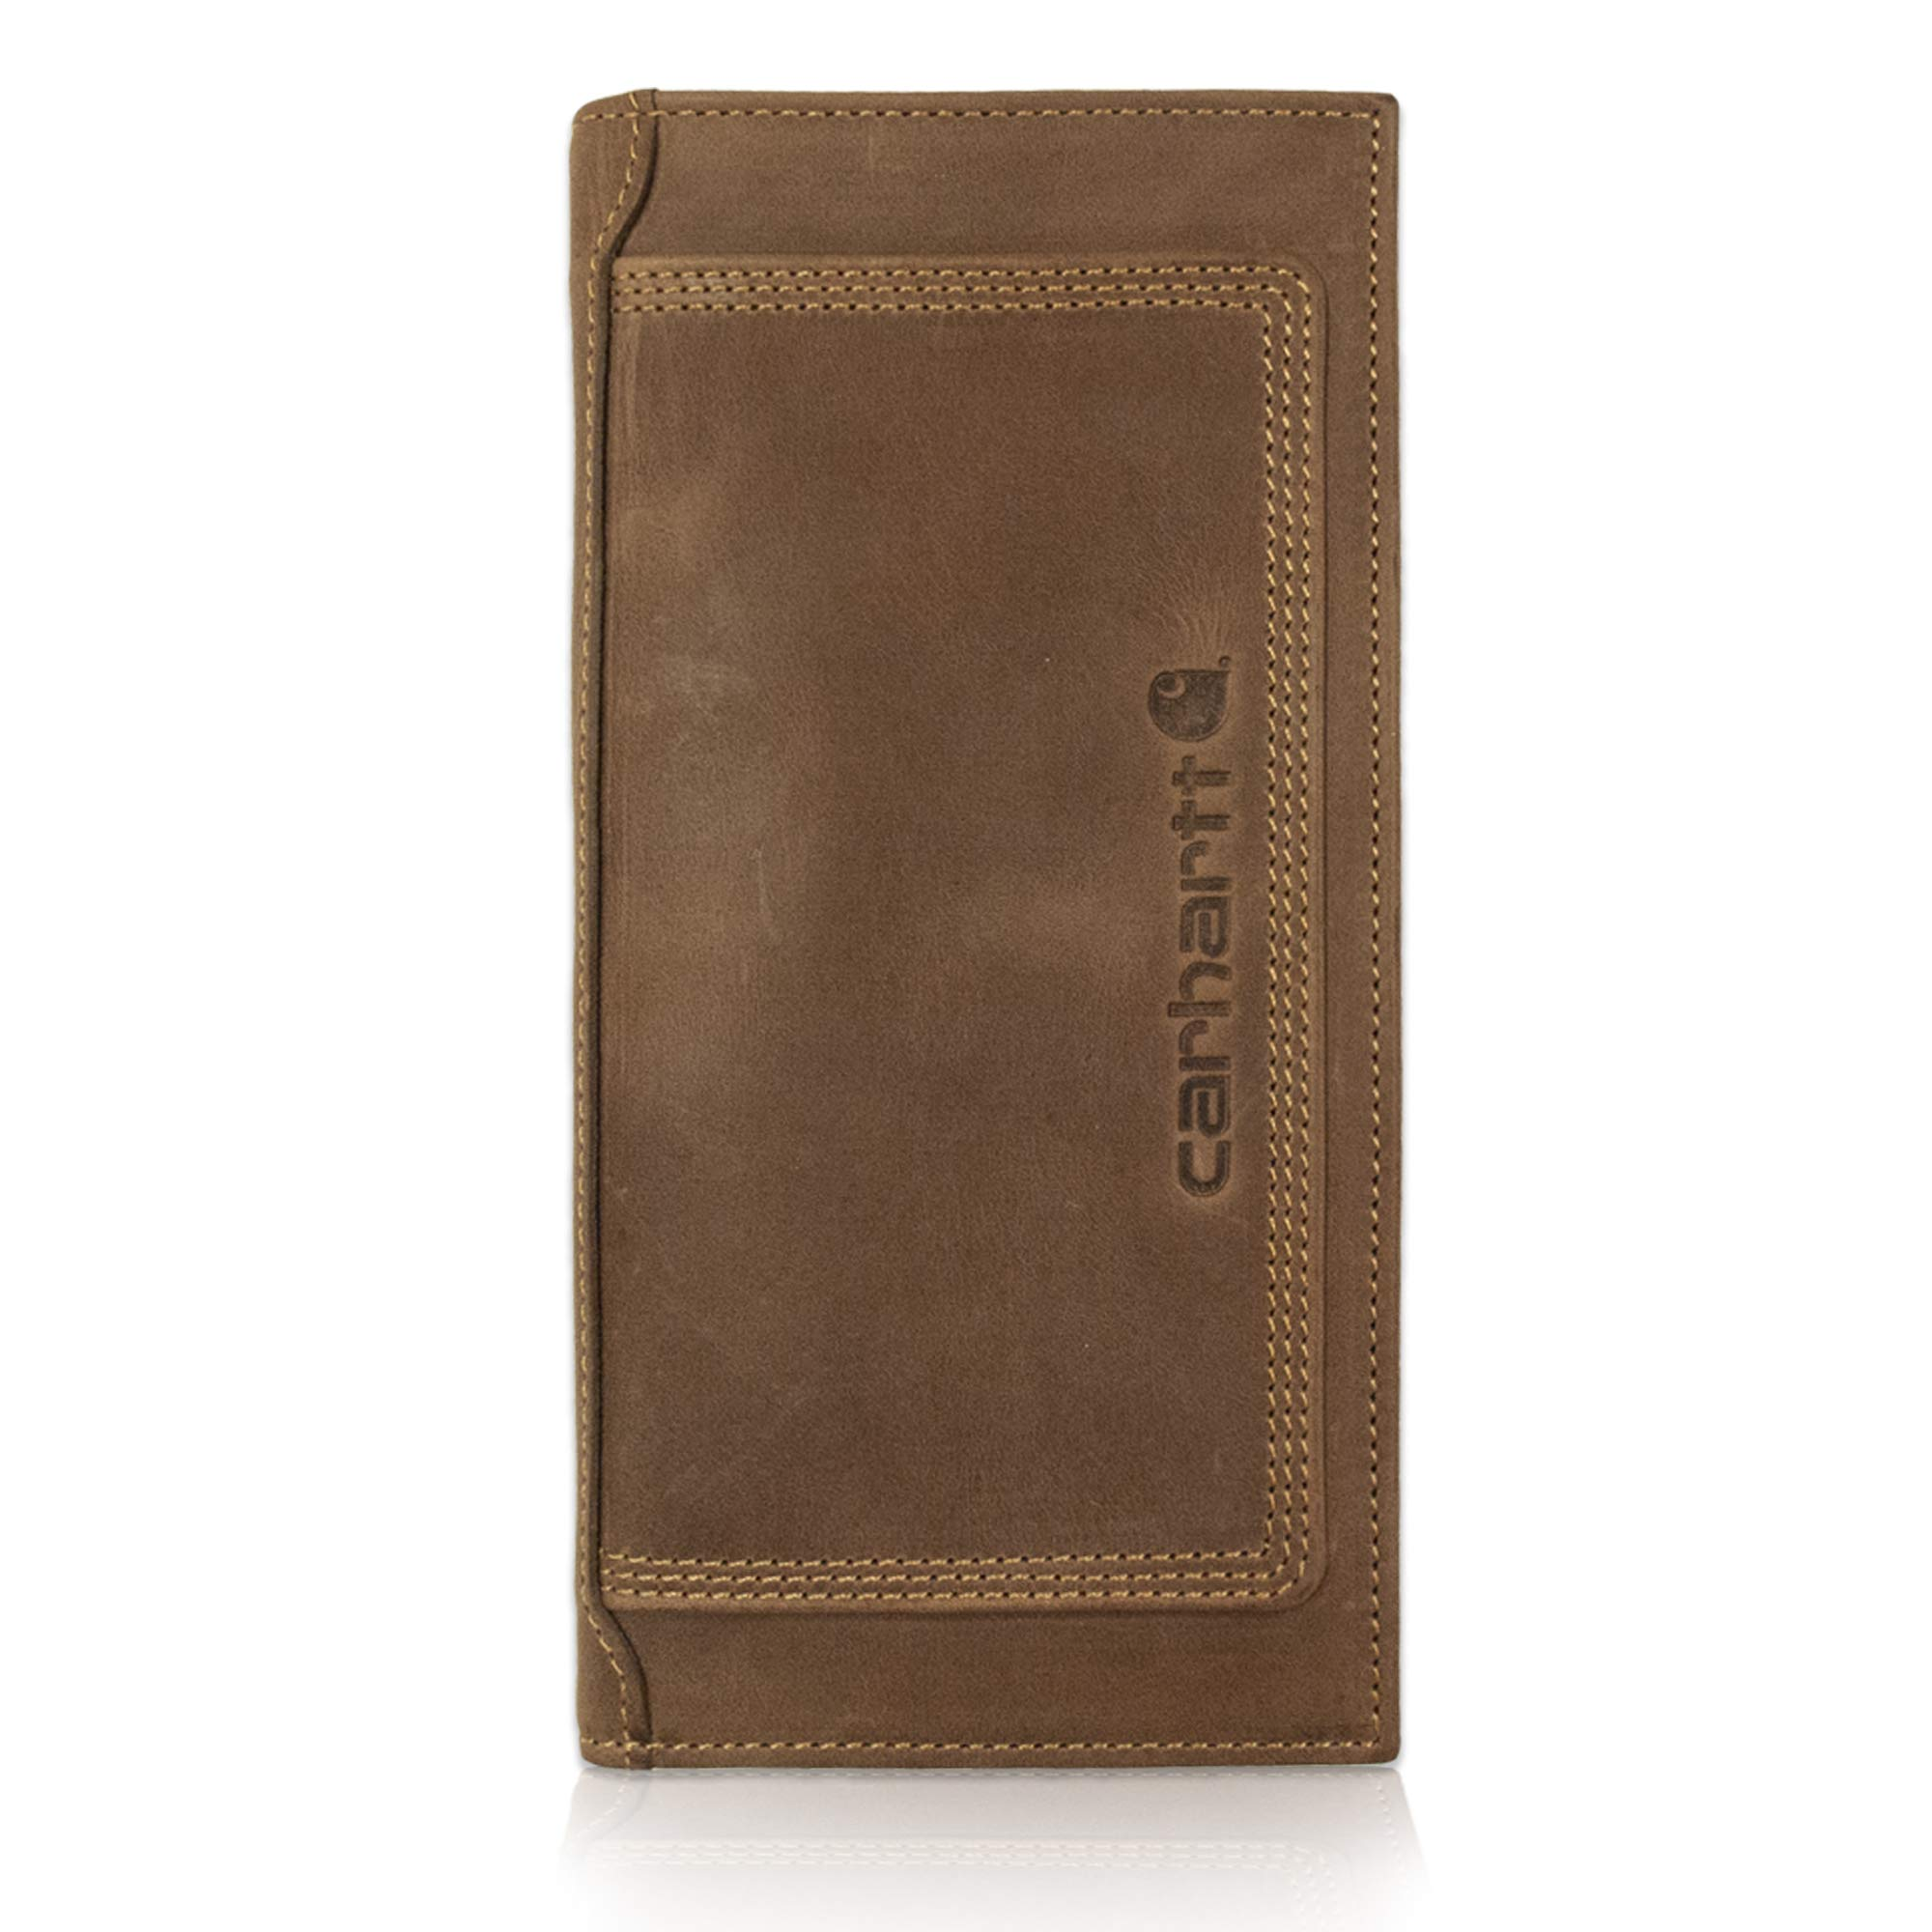 Carhartt Leather Wallet Contrasting Stitch